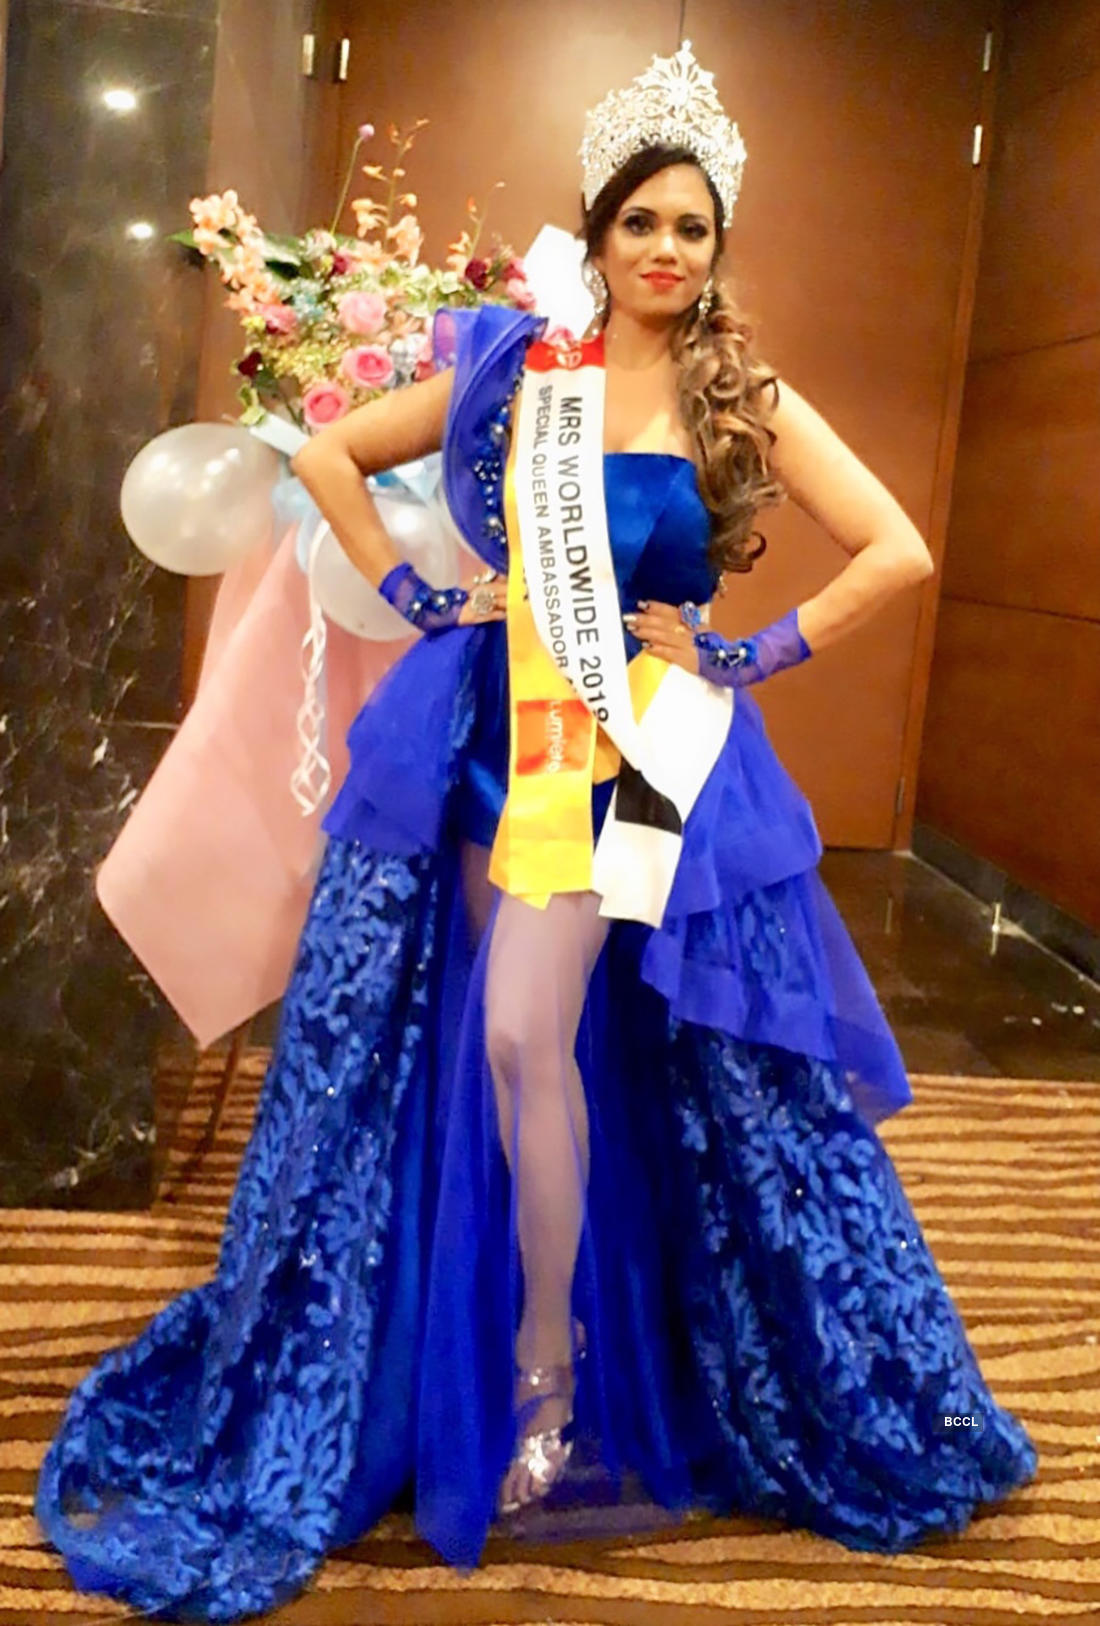 Pictures of the gorgeous Shwetha Niranjan who bags a title at an International Beauty Pageant